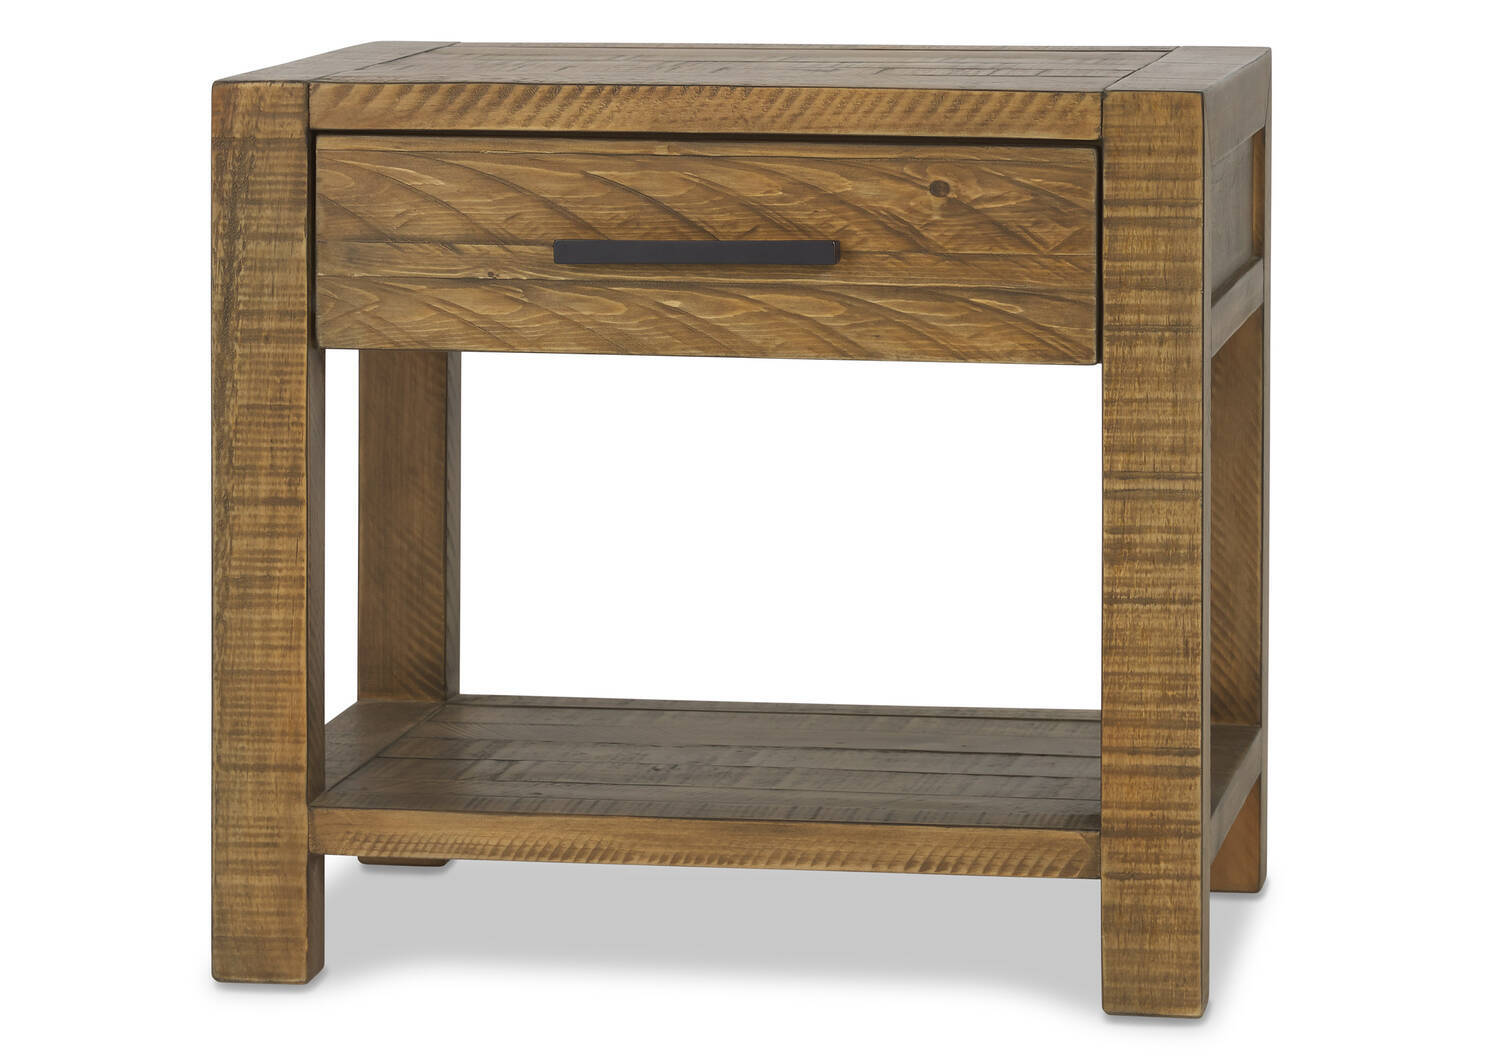 Table d'appoint Northwood -Stanton pin